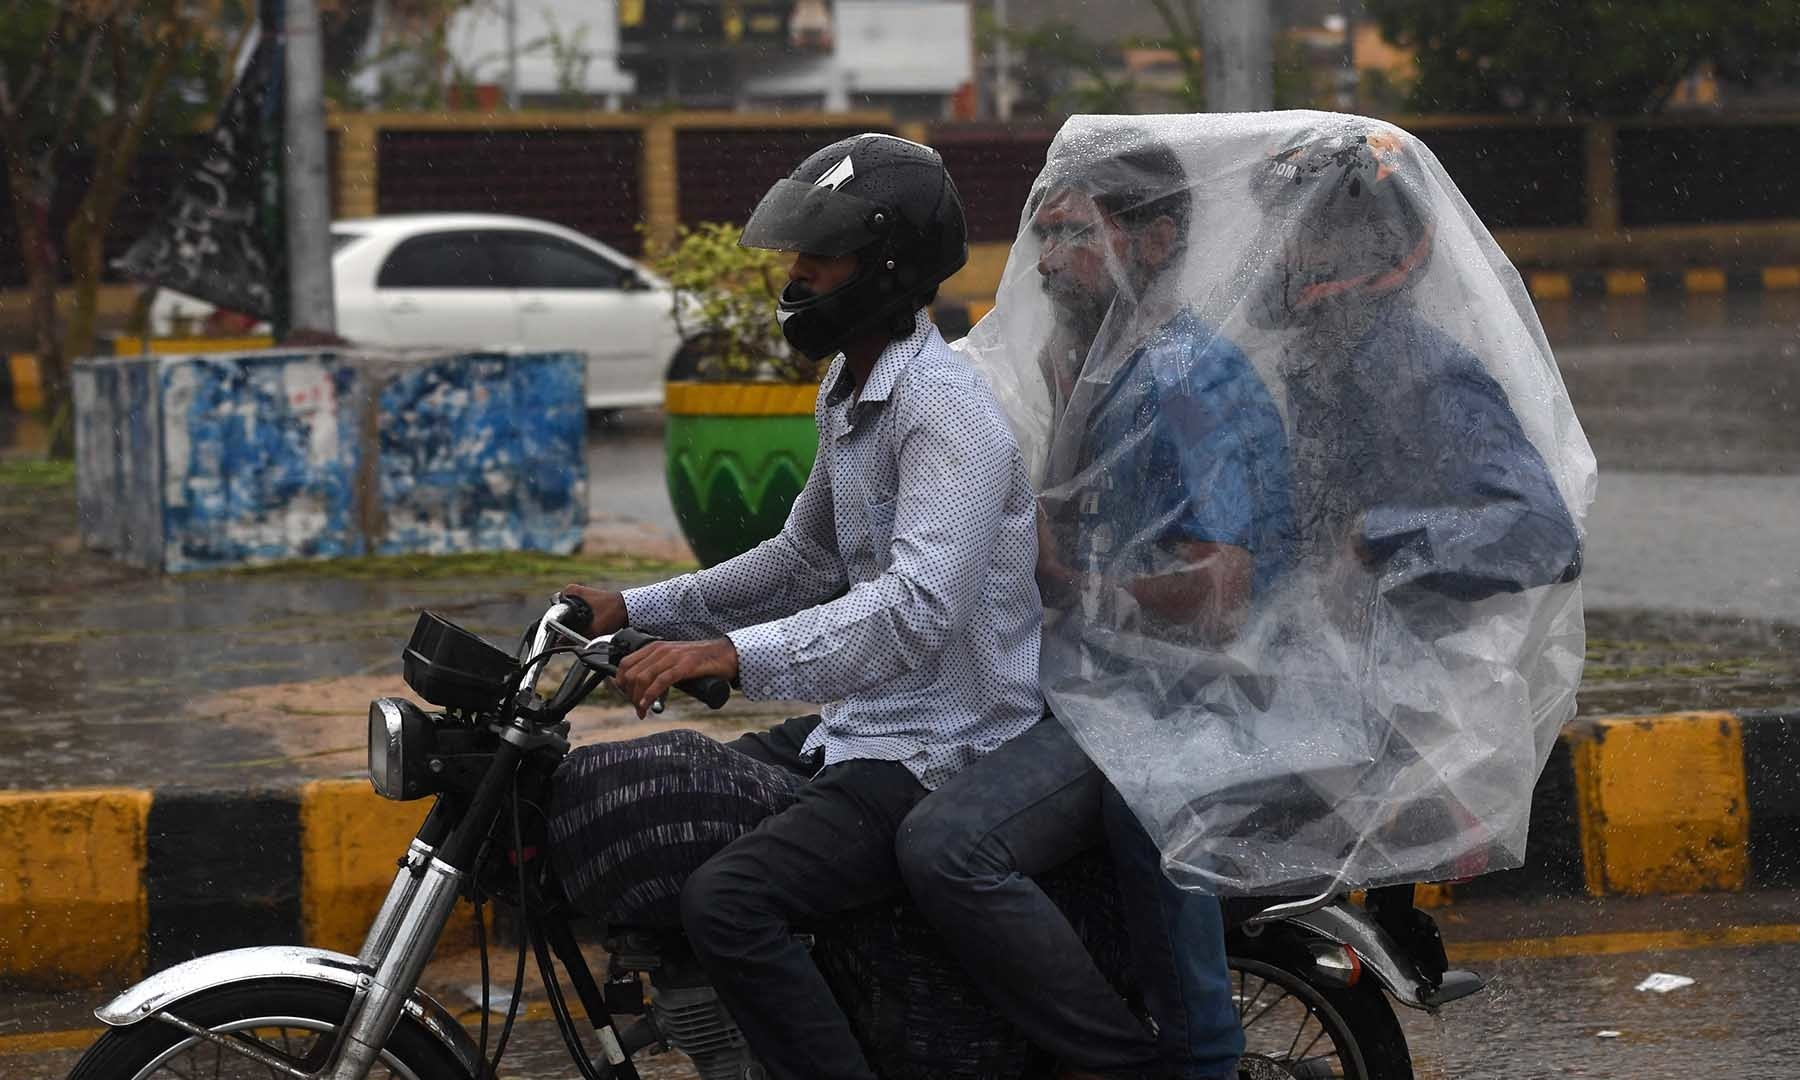 A motorcyclist rides on a street as their passengers try to keep dry under a plastic covering in Karachi on Monday. — AFP